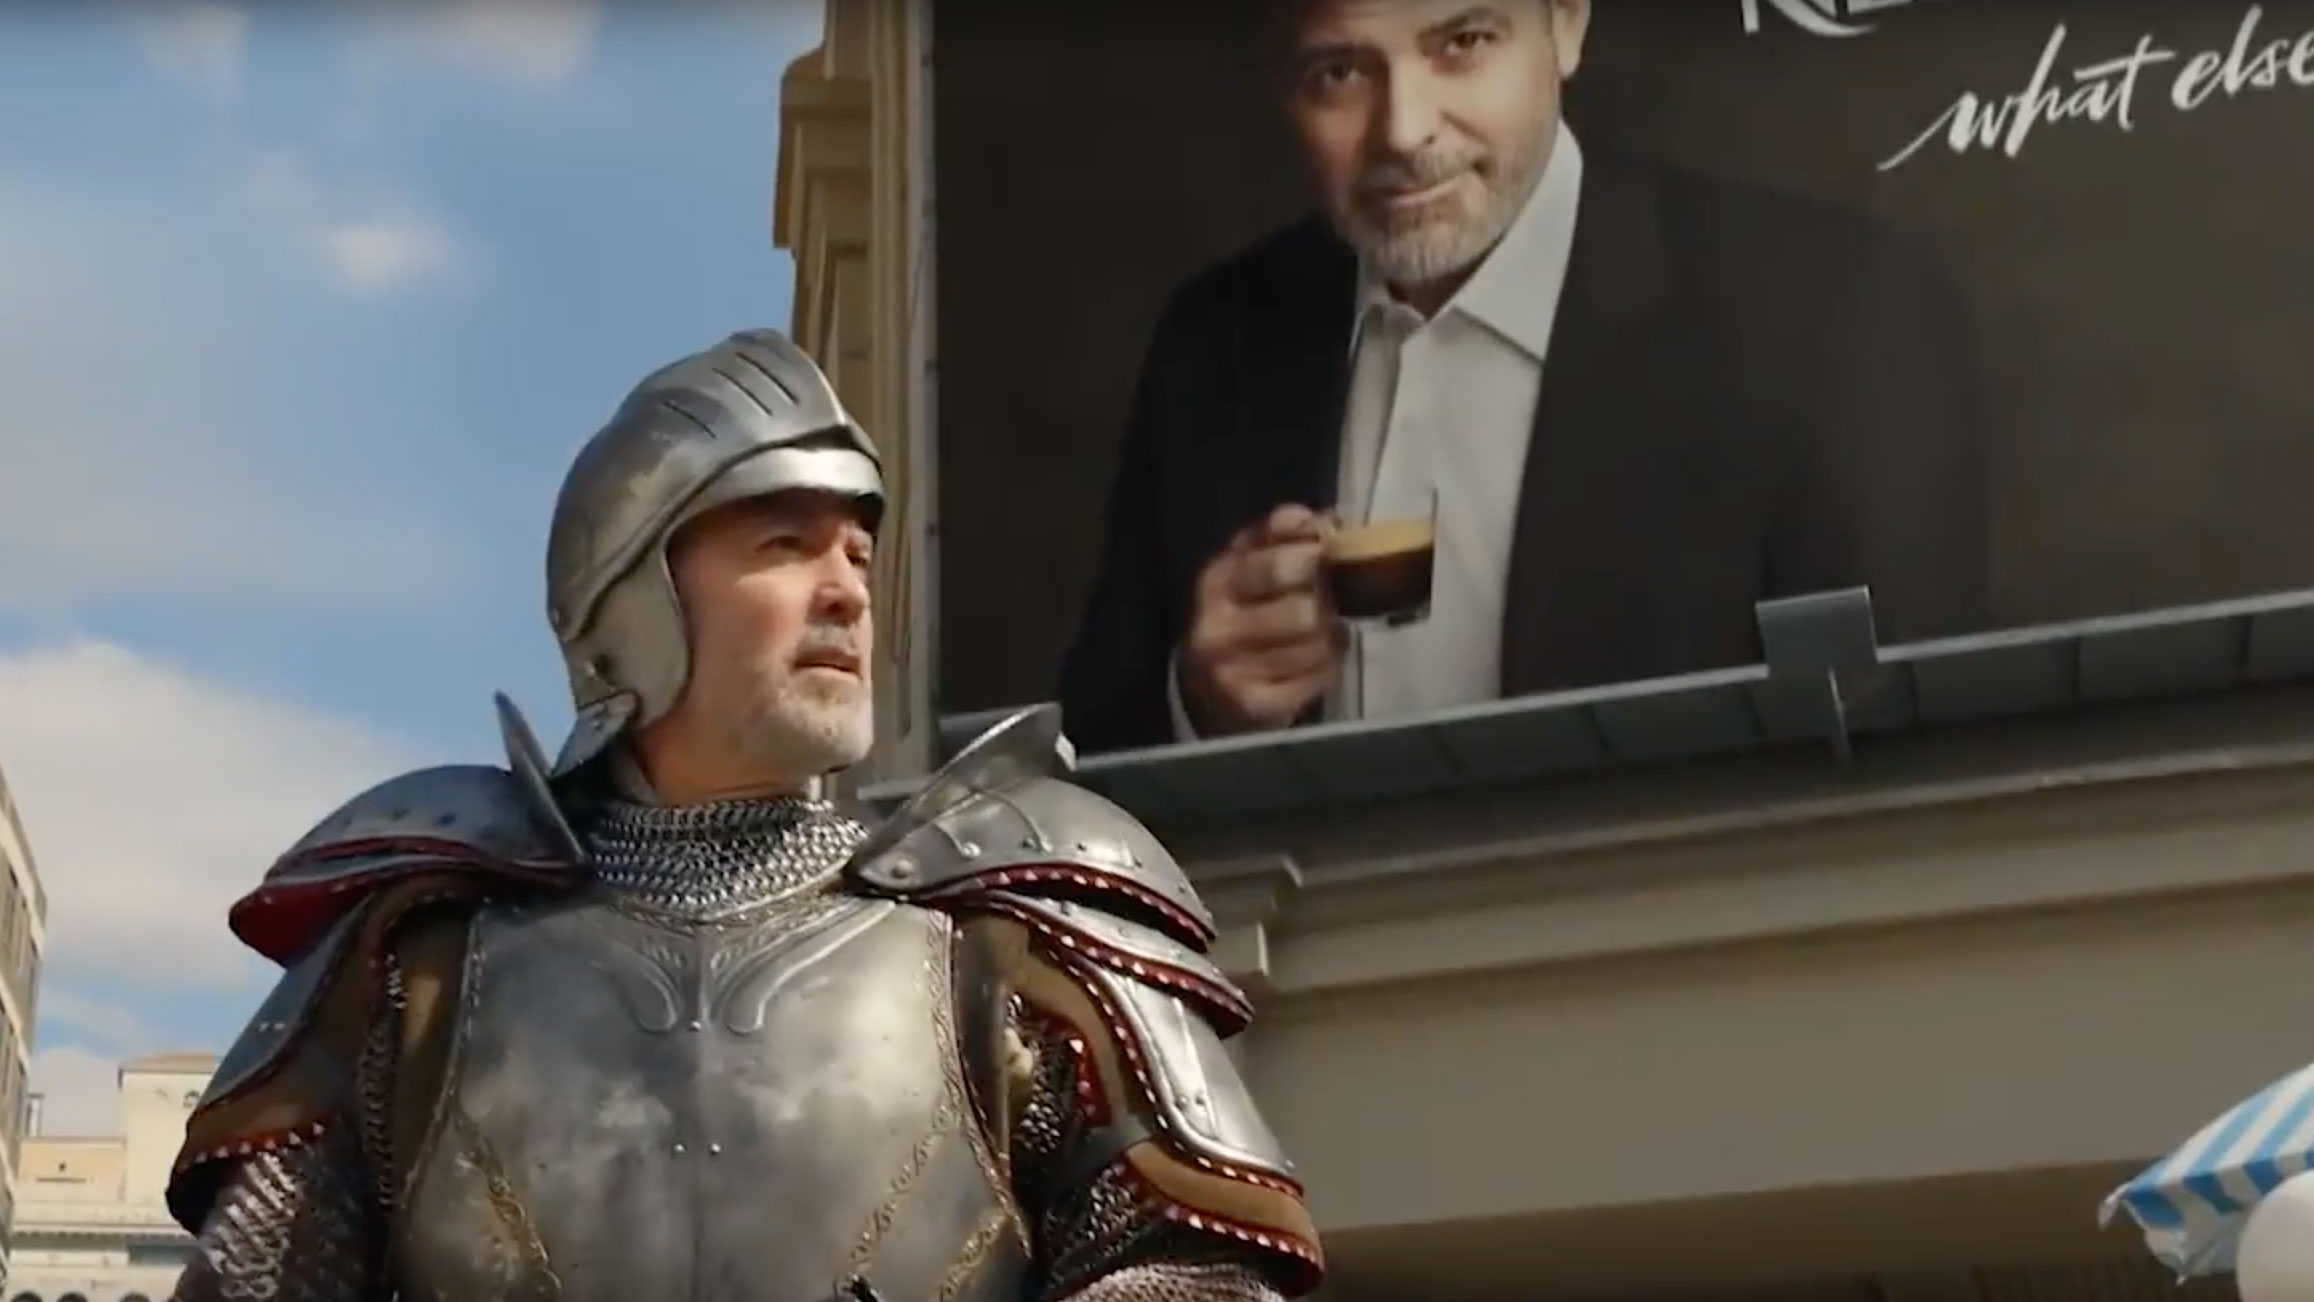 George Clooney is seen in a Nespresso ad. (Nespresso/YouTube via CNN)